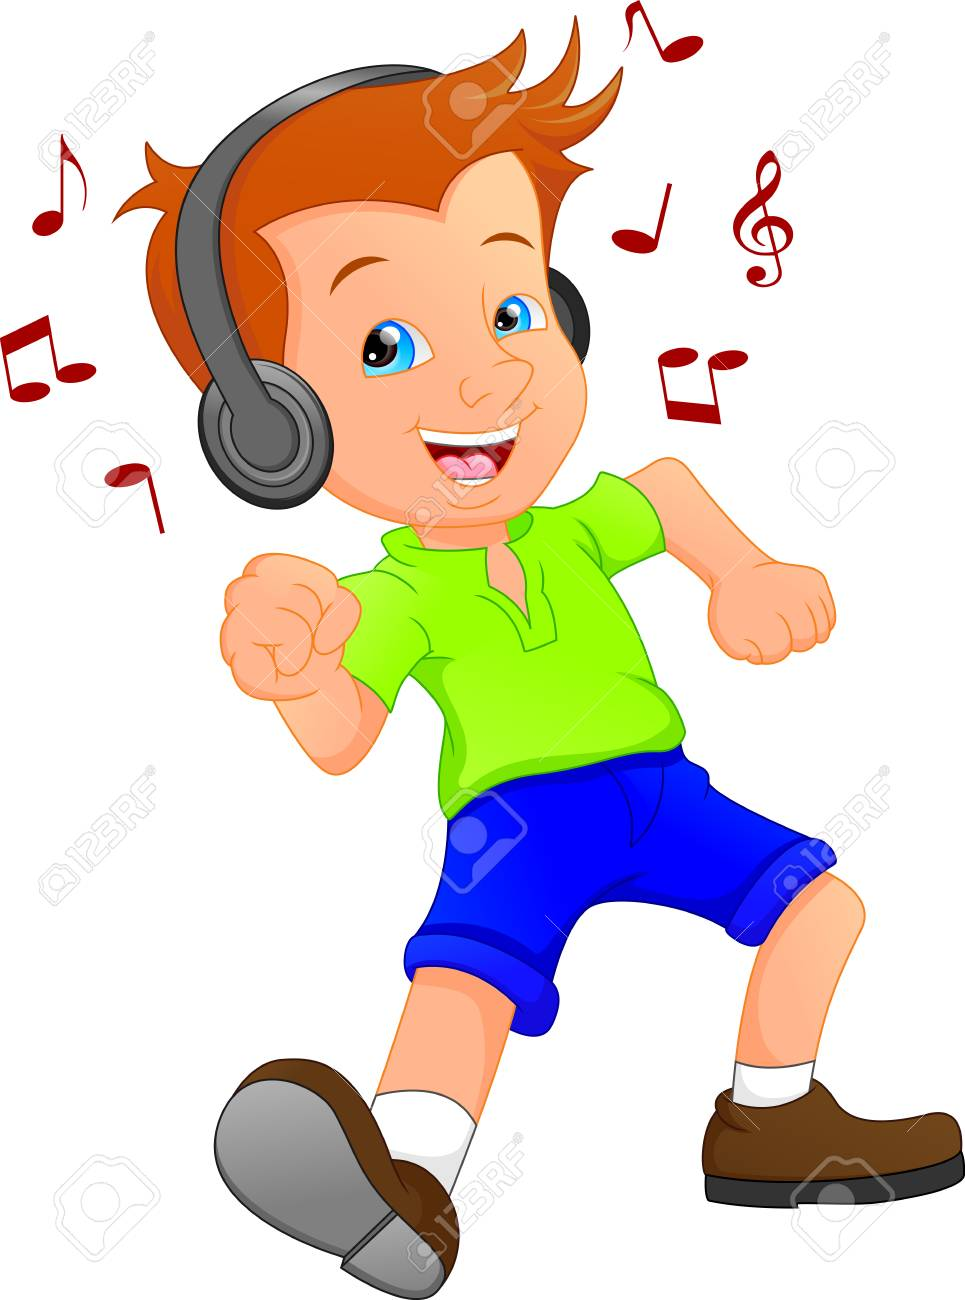 a funny cartoon boy listening to music and dancing royalty free